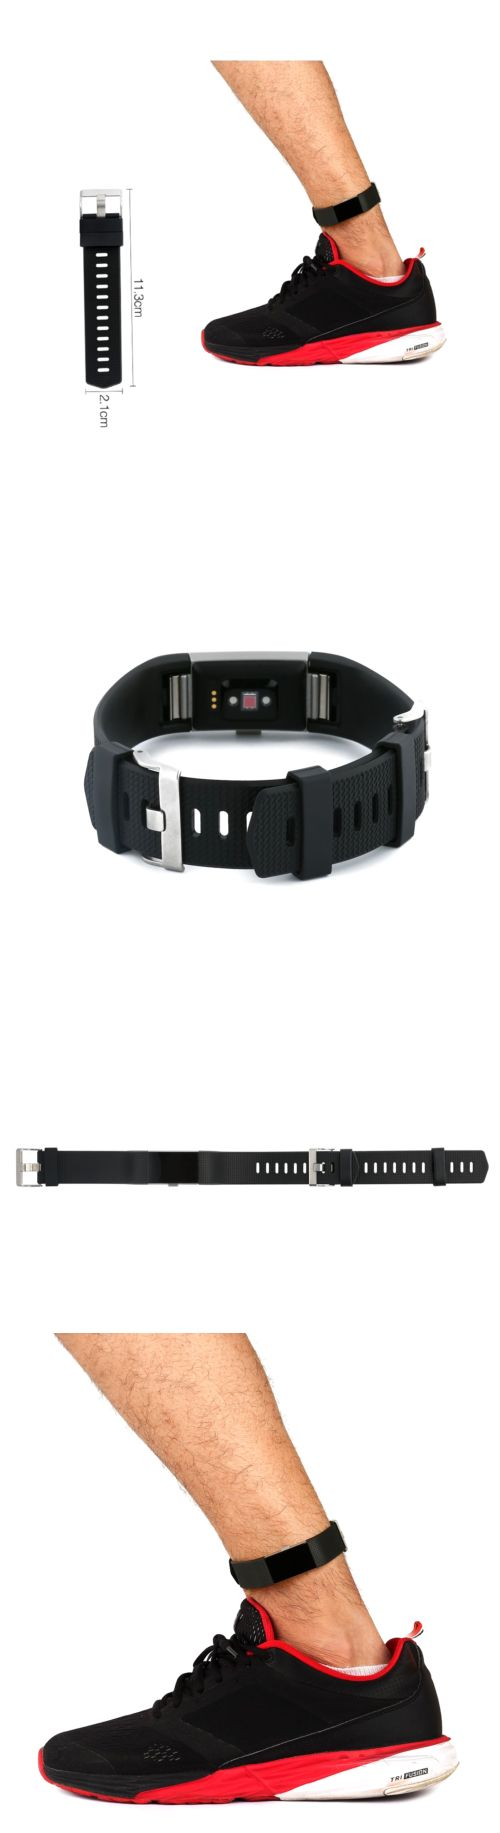 Fit Tech Parts and Accessories 179799: Ankle Wristband Strap Accessories For Fitbit Charge 2 And Hr Band Extender Xl W -> BUY IT NOW ONLY: $36.4 on eBay!